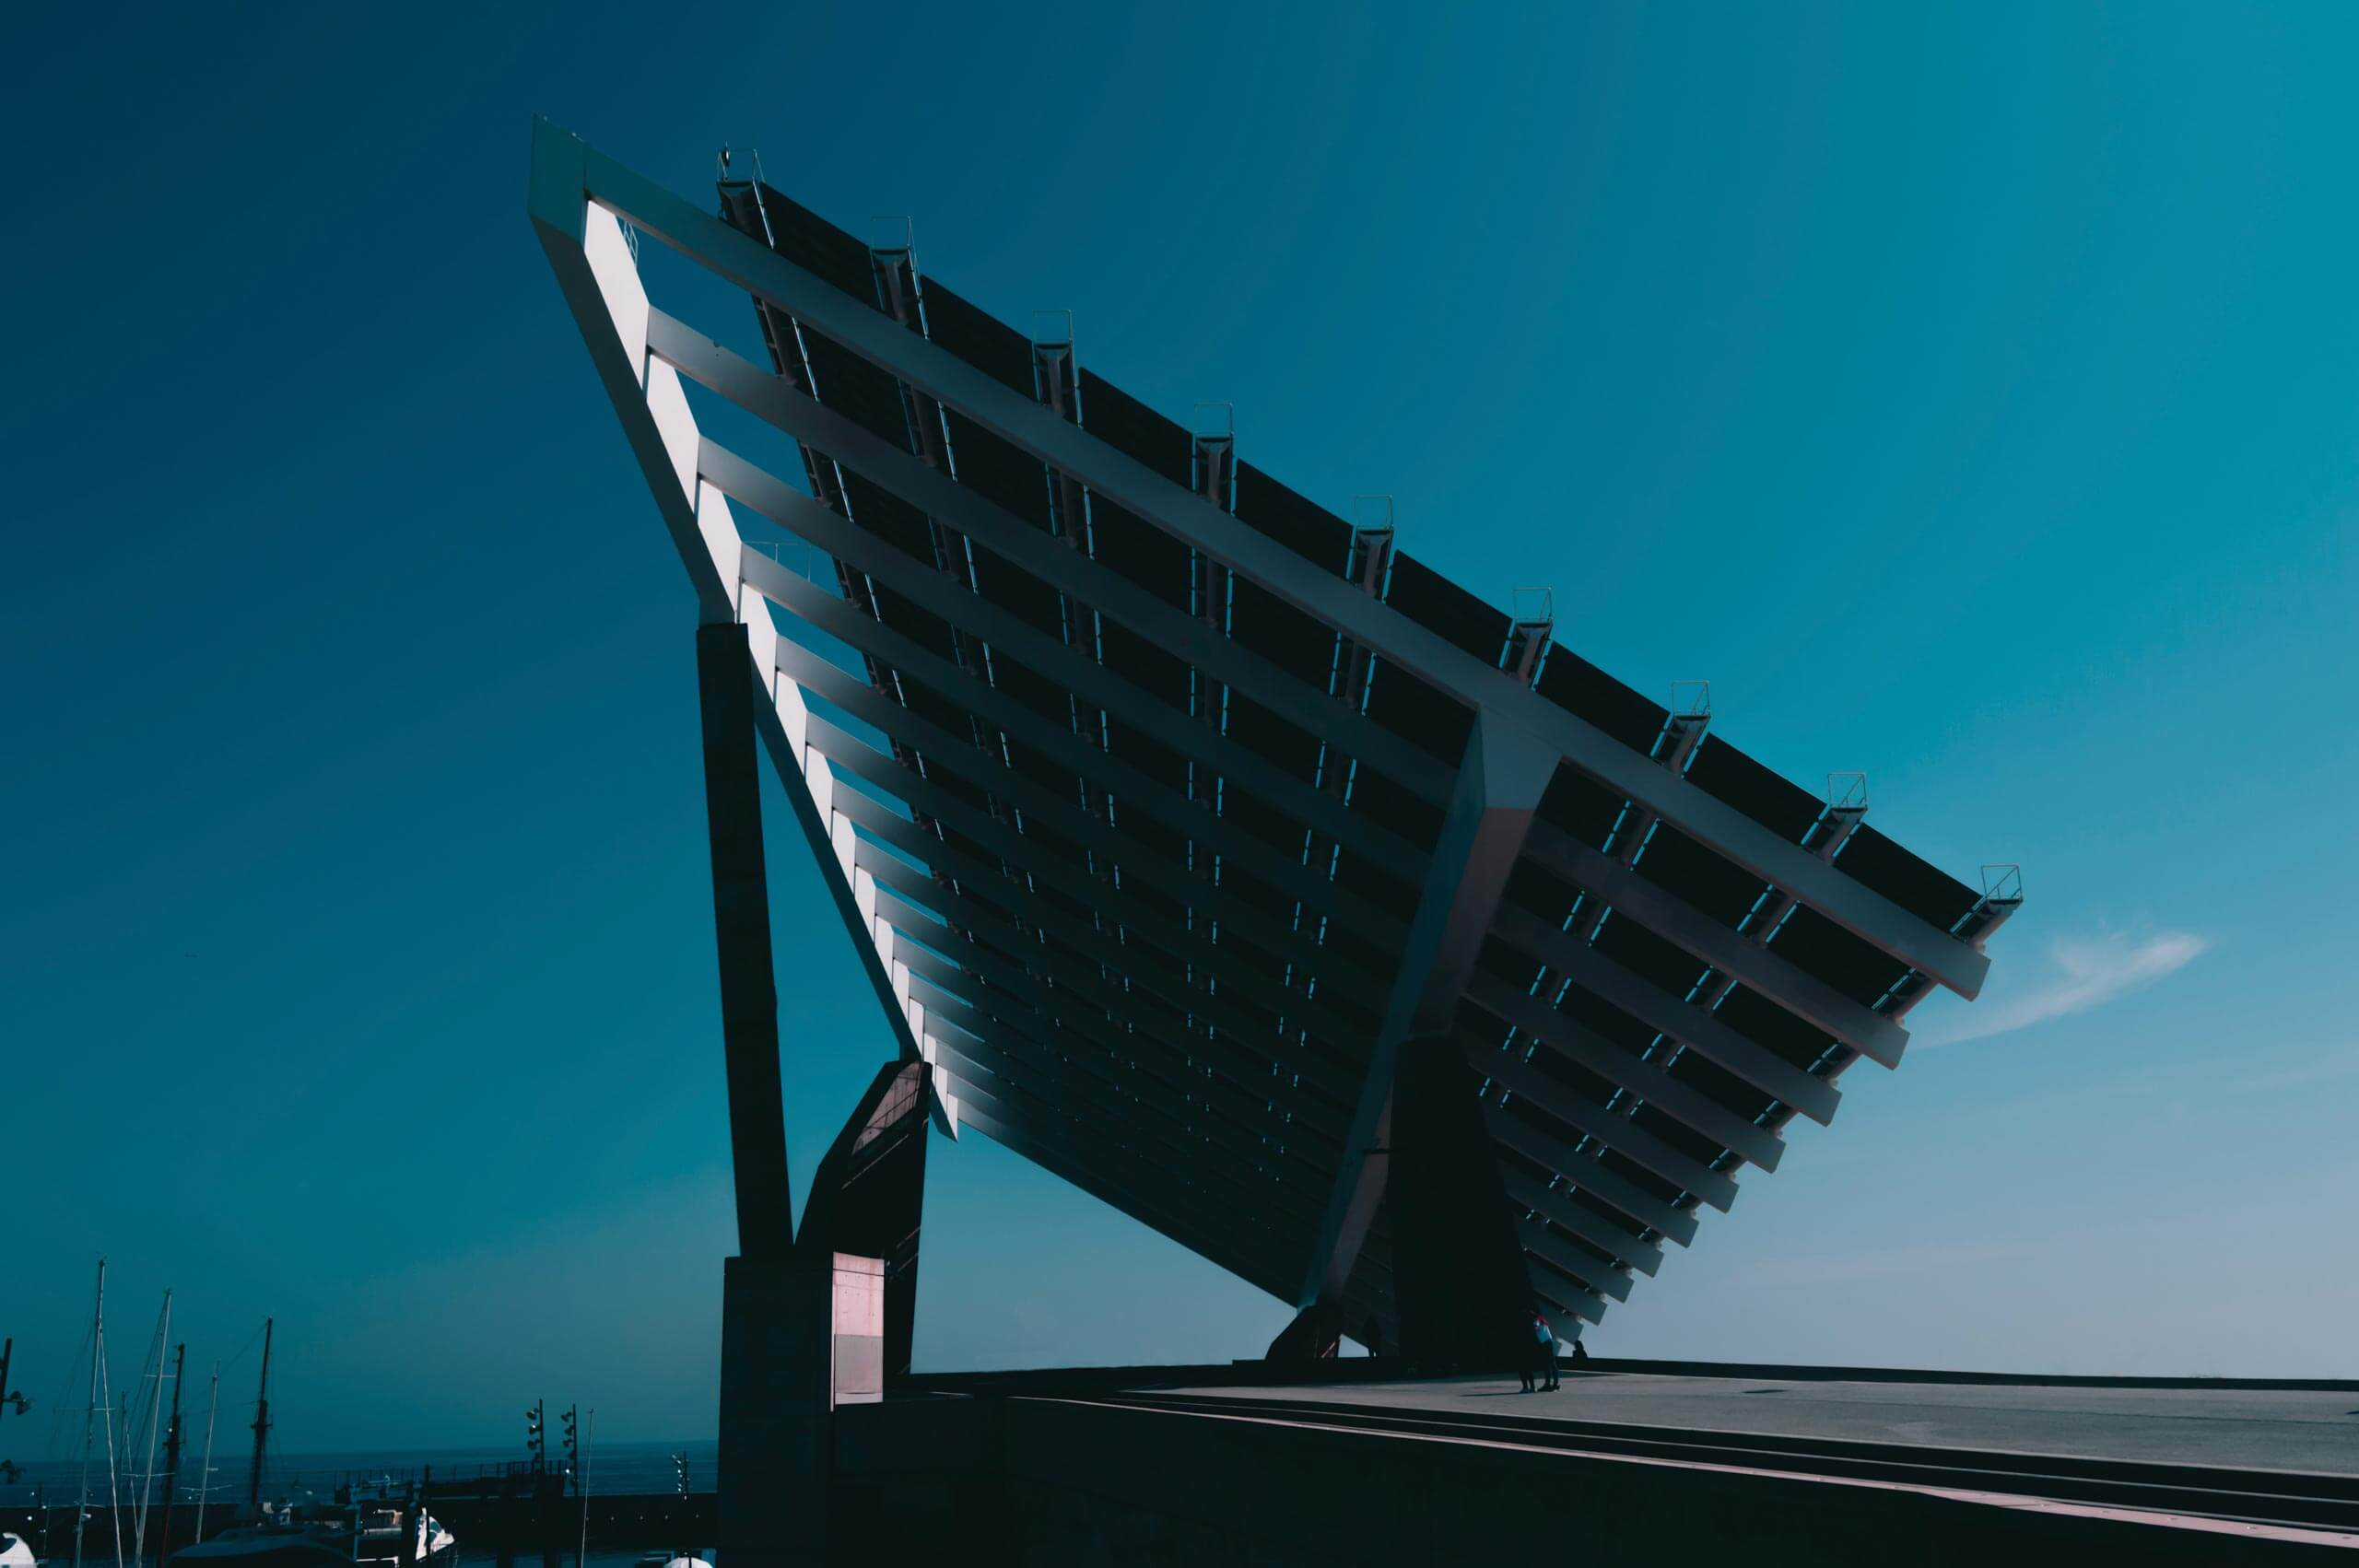 A large-scale solar panel installation faces towards the sun on a beautiful, clear day